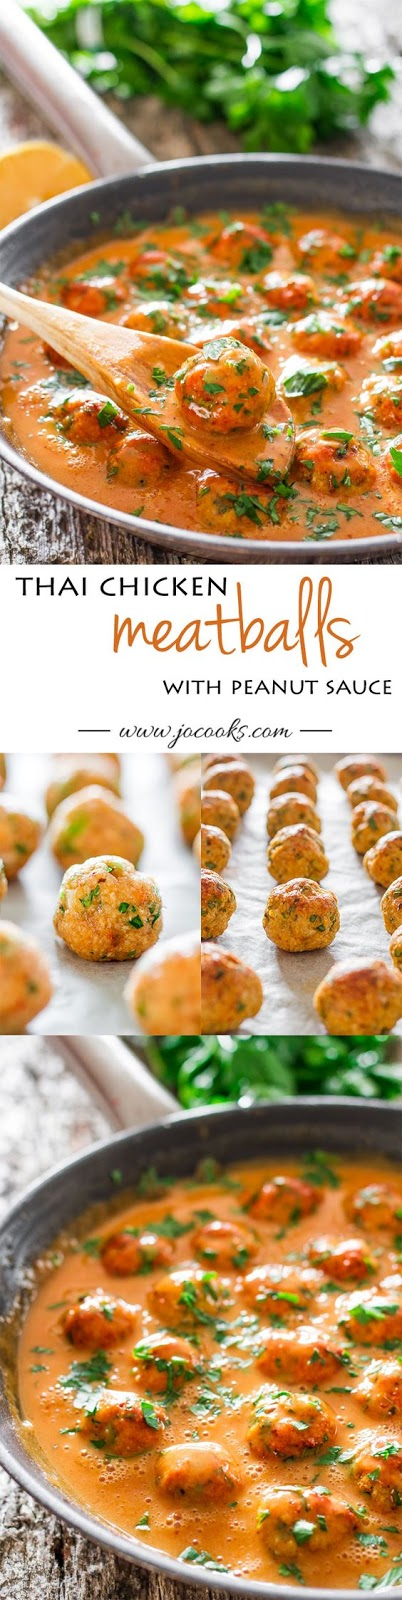 Skinny Thai Chicken Meatballs with Peanut Sauce